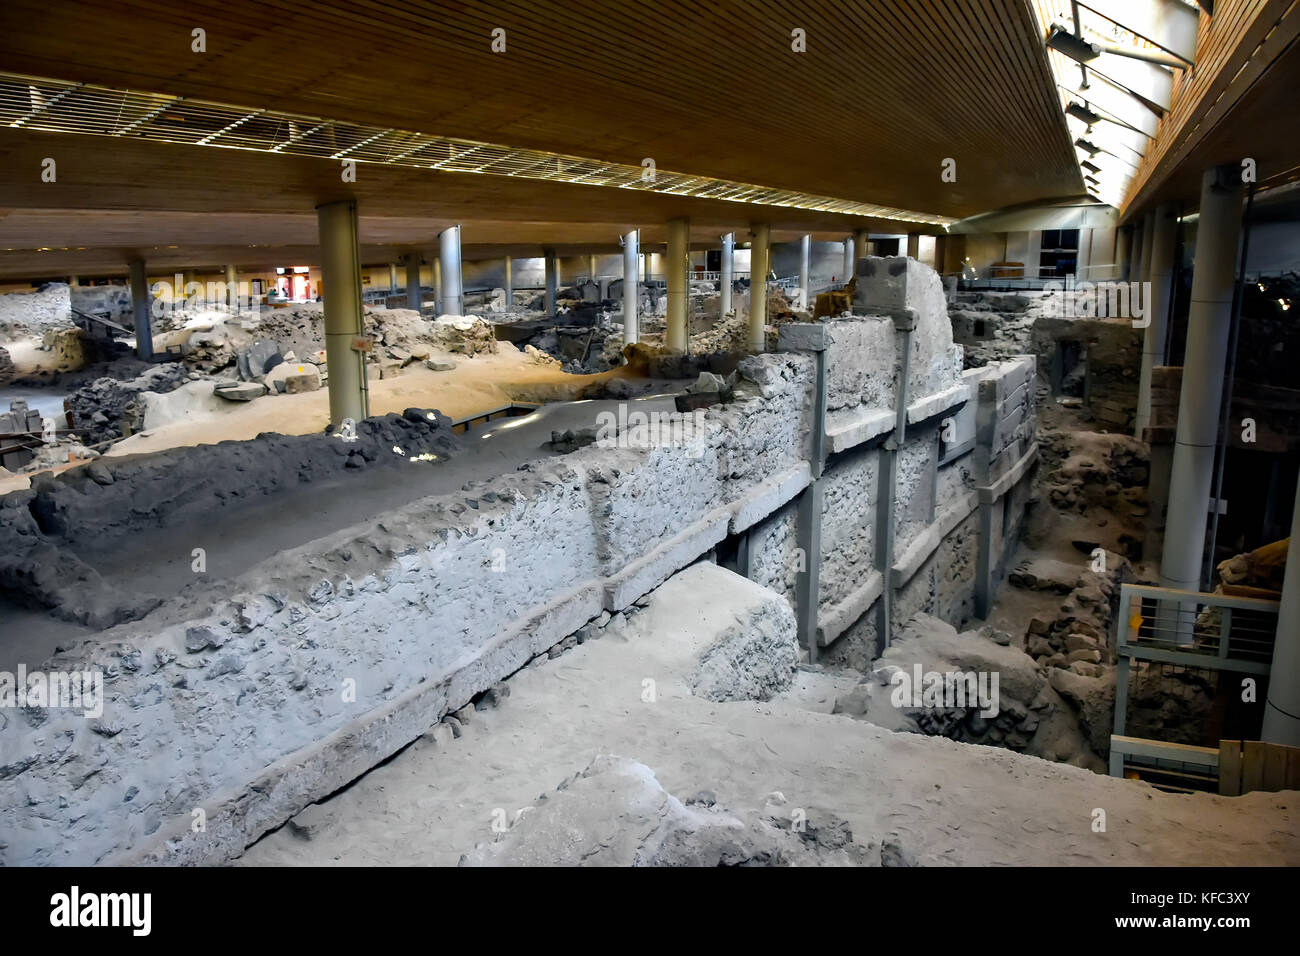 Akrotiti Minoan excavation multi-story dwelling in building protecting archaeological site, Santorini, Greece. - Stock Image